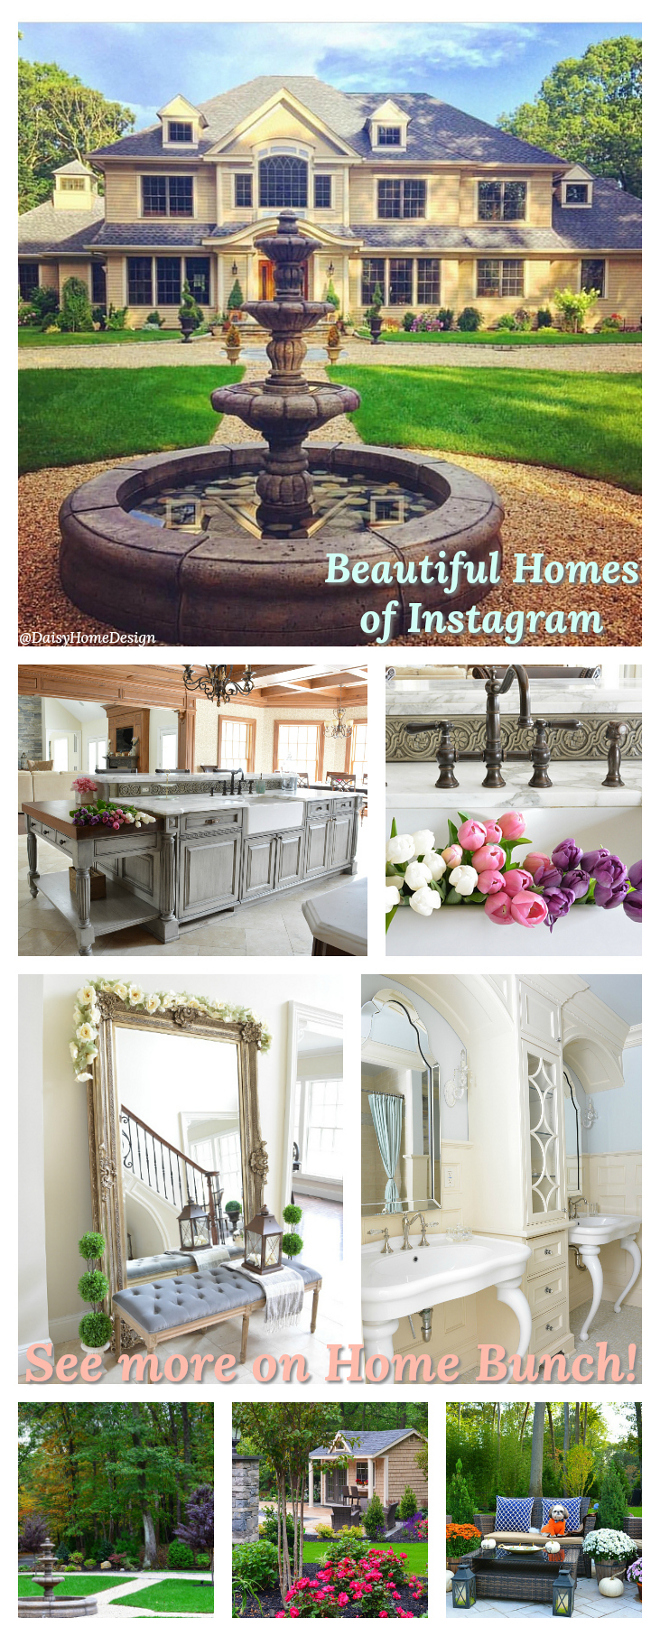 Beautiful Homes of Instagram @DaisyHomeDesign